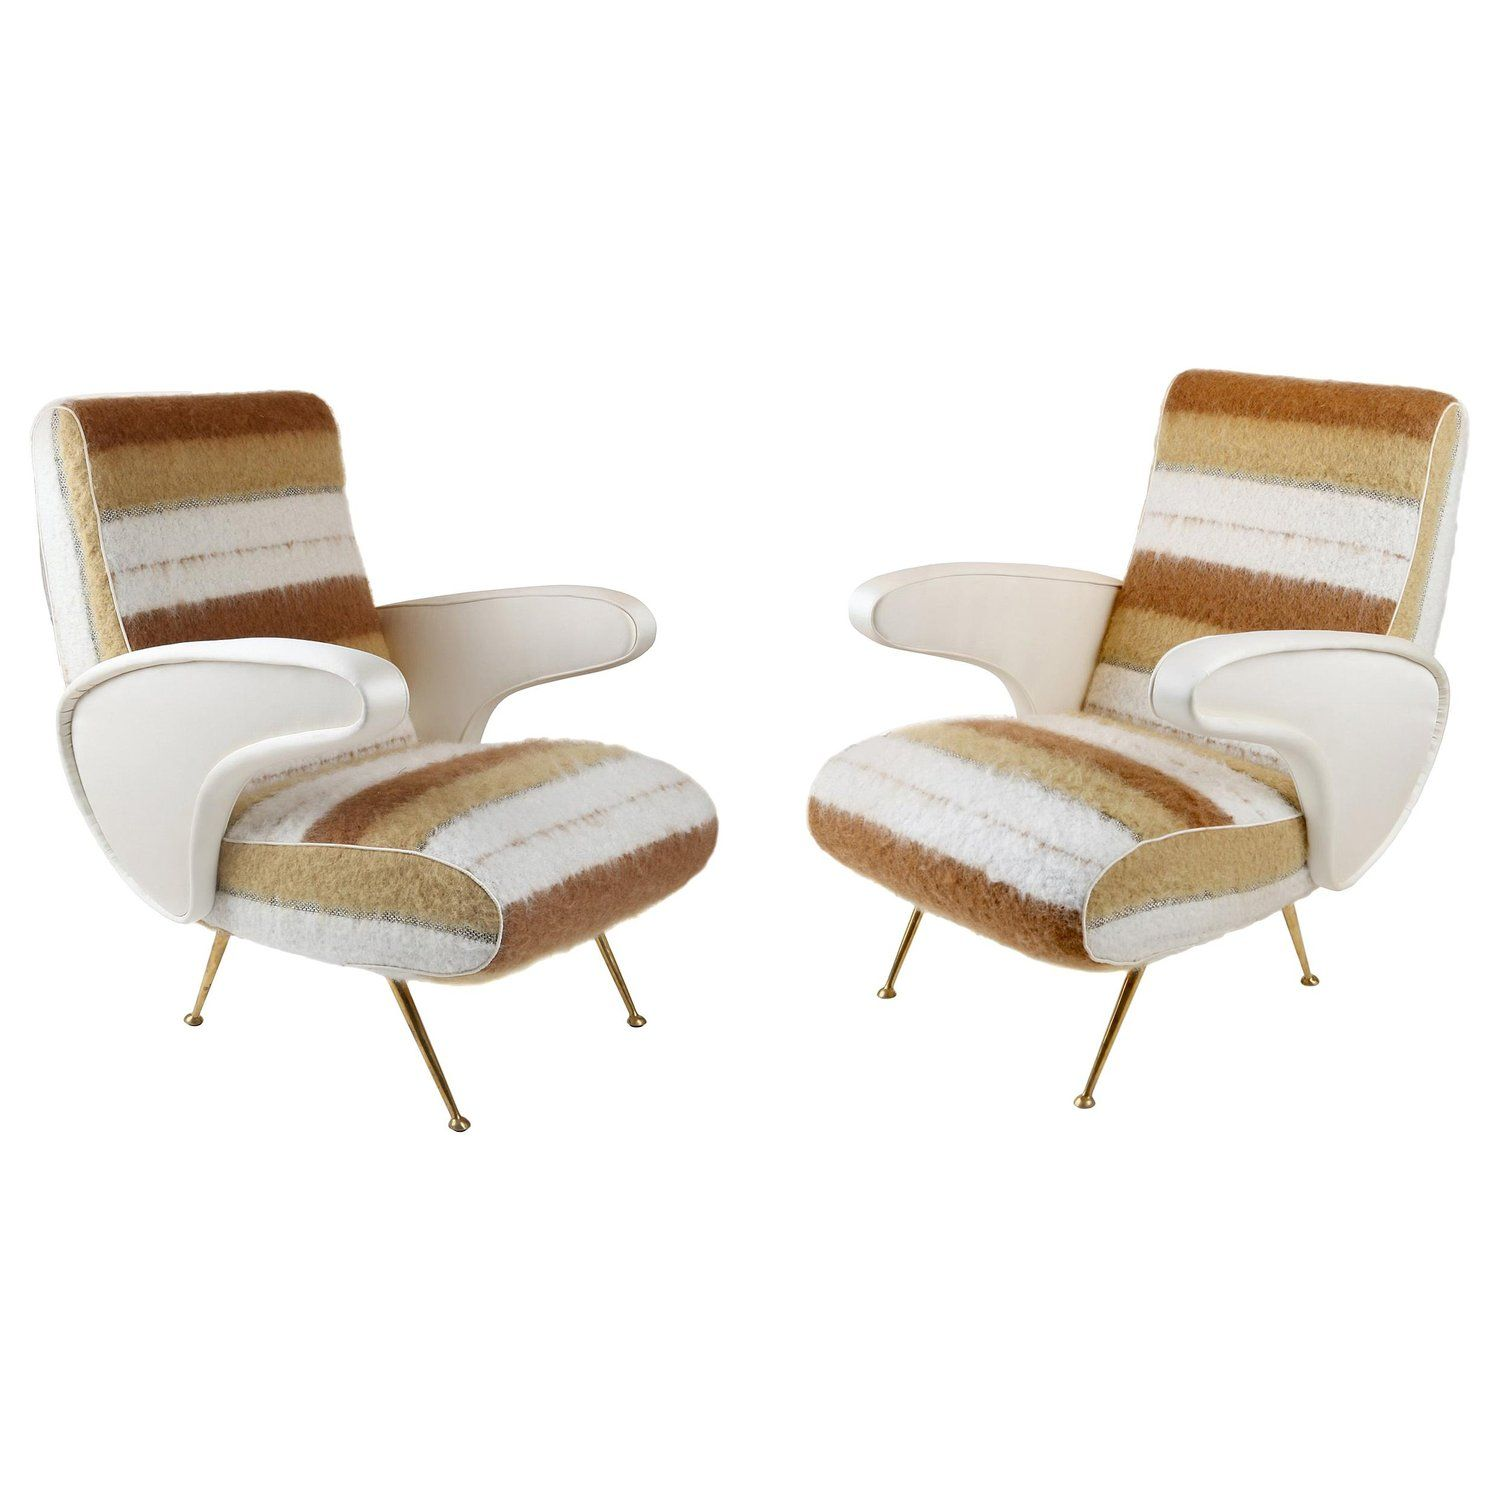 Pair Of Mid Century Modern Italian Chairs Upholstered In Textured